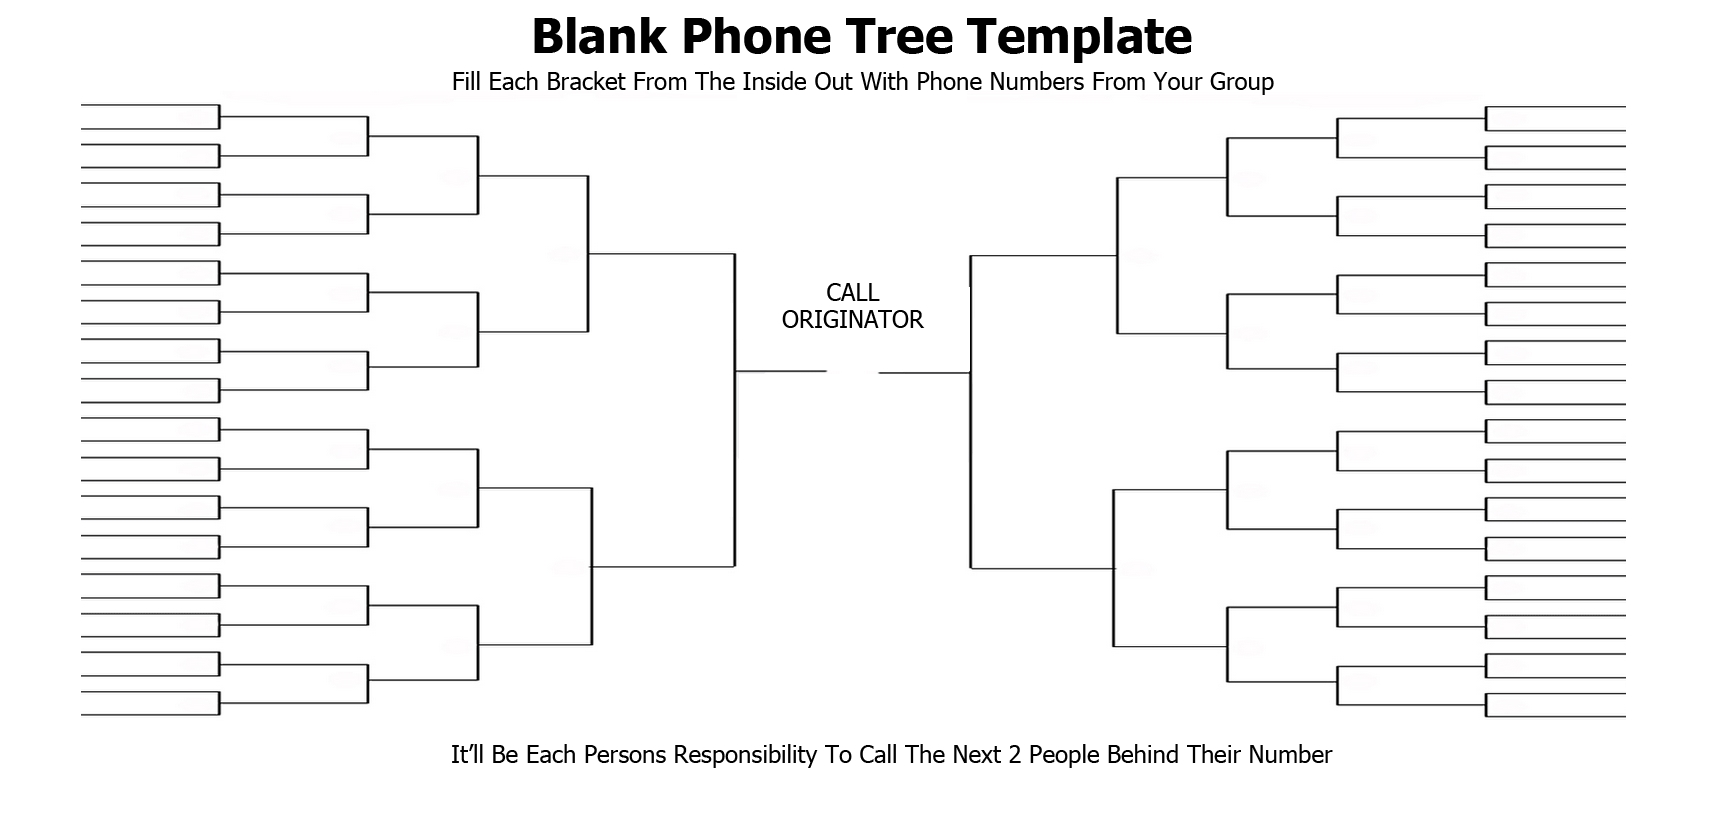 phone tree template word Ecza.solinf.co